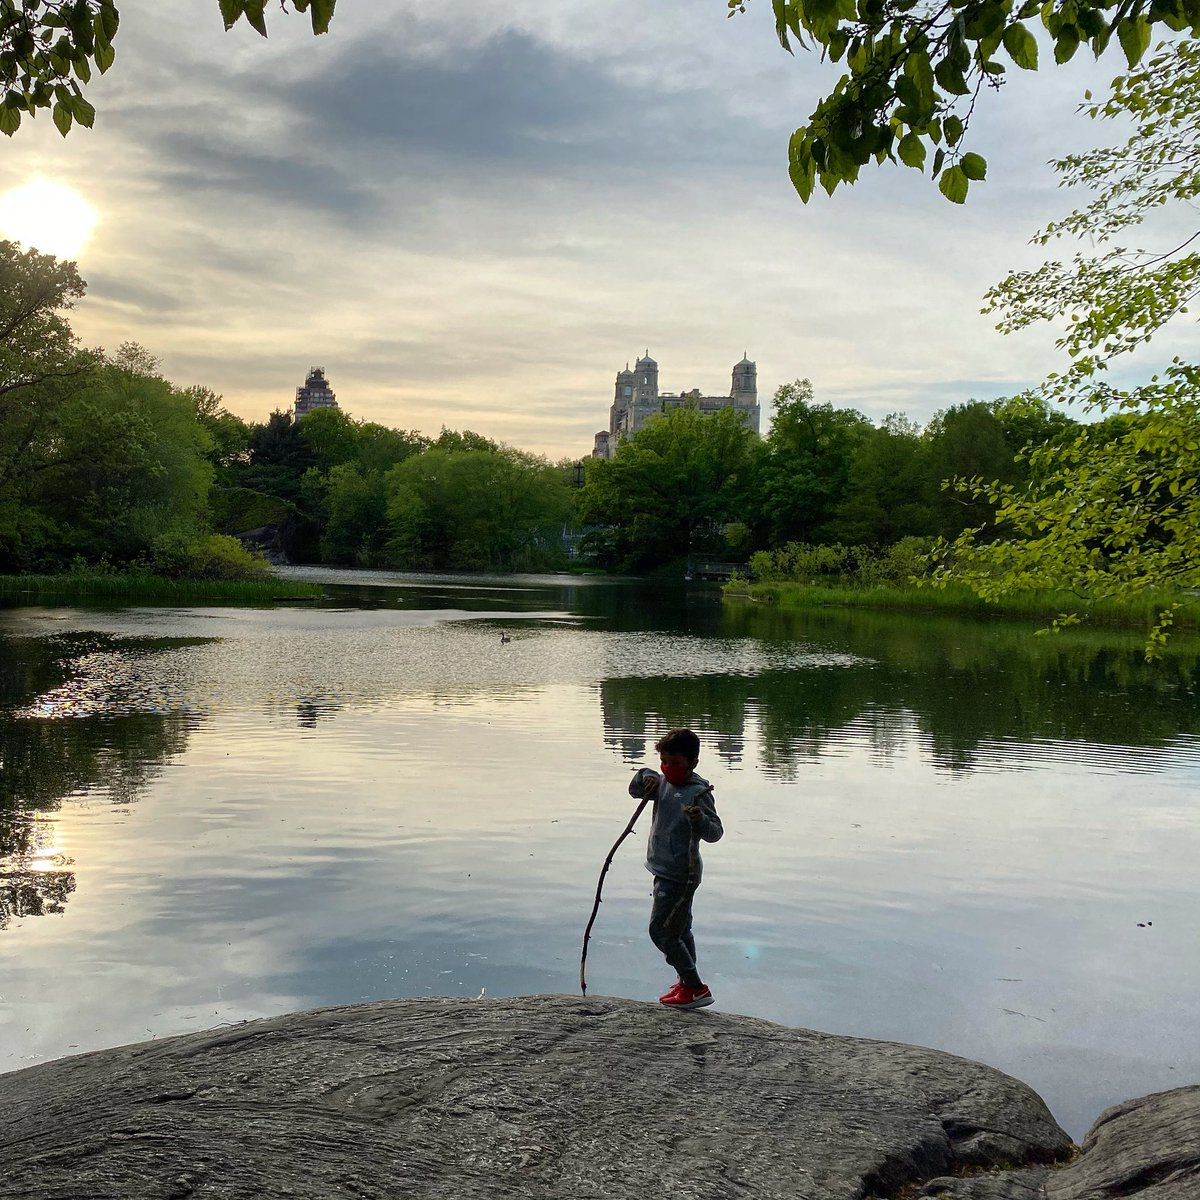 Sunset by Belvedere Lake #CentralPark #nyc #sunset https://t.co/l1Uunm3RNr